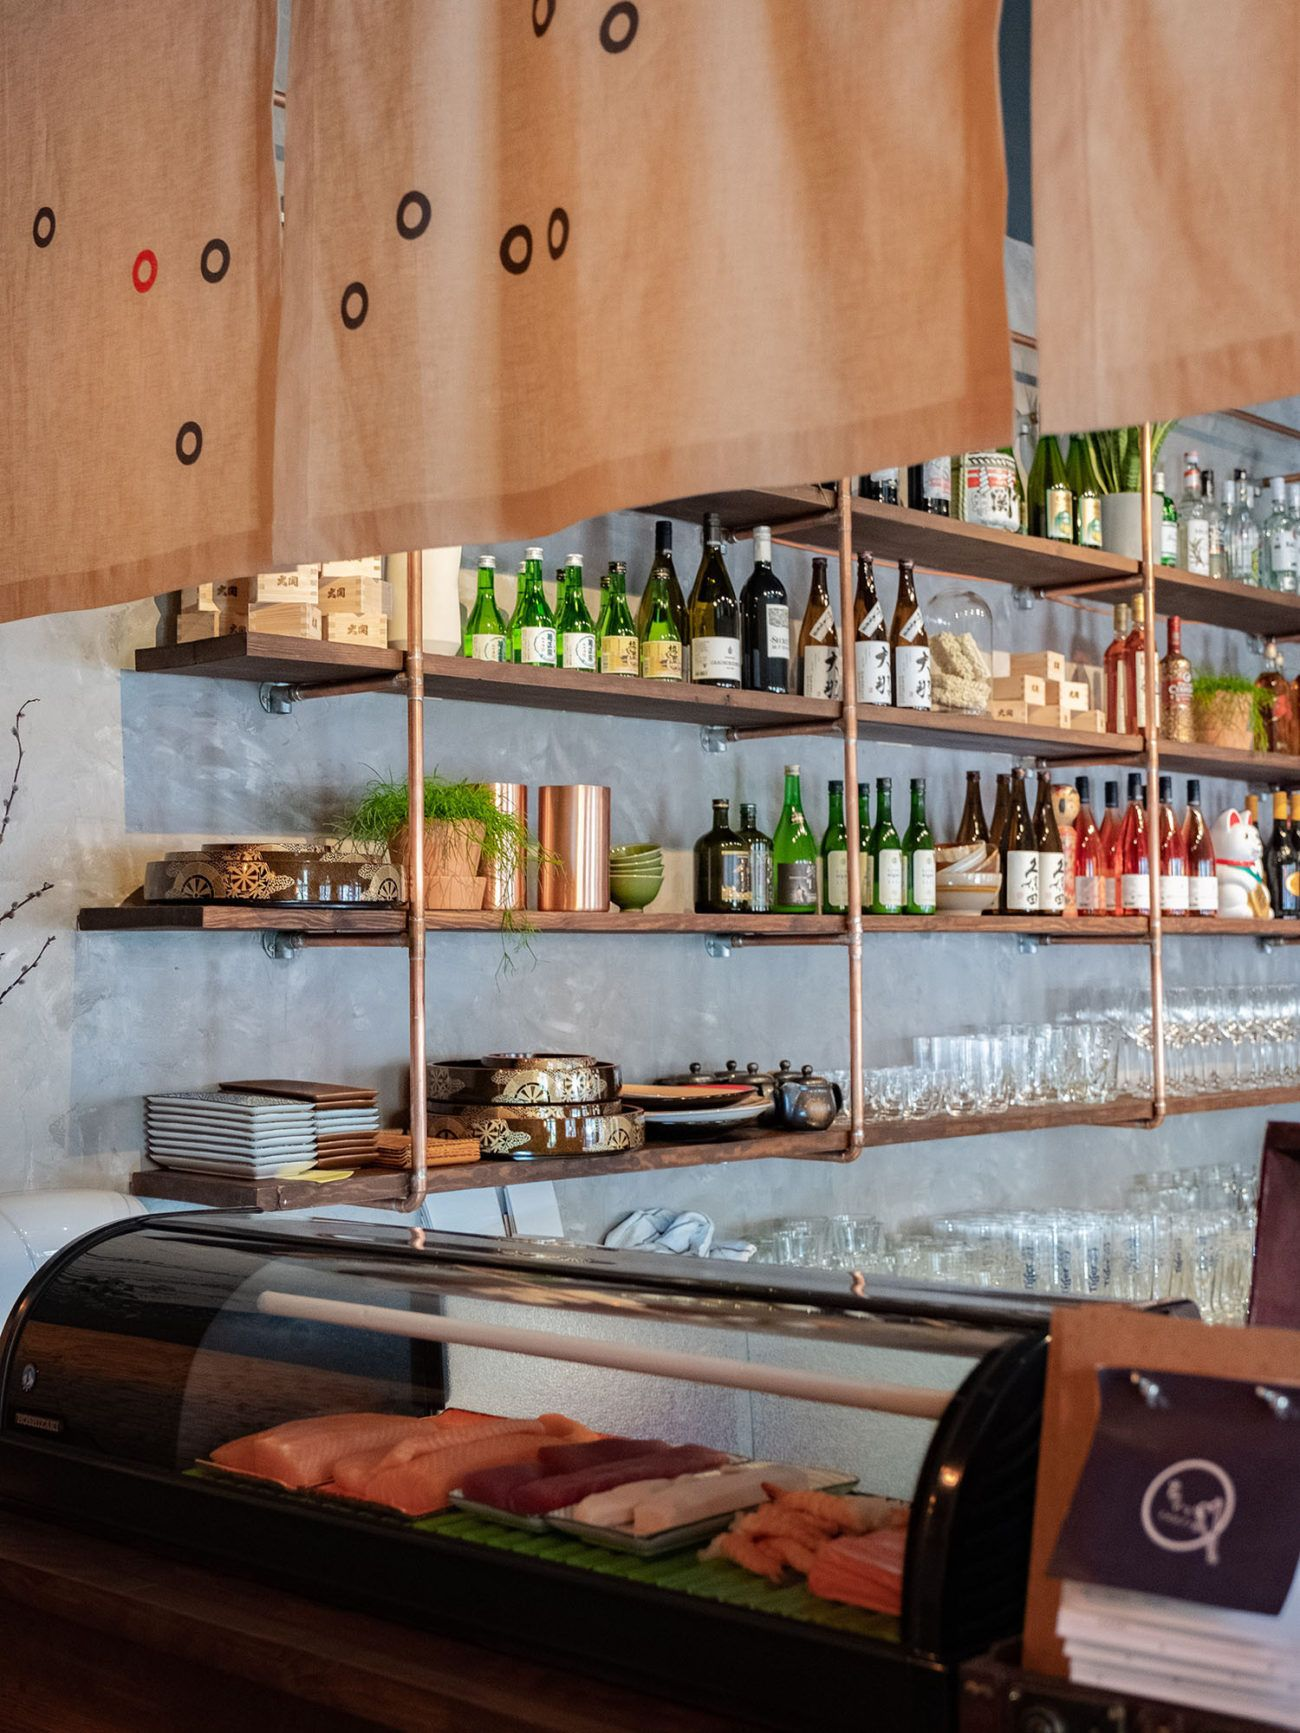 Foodblog About Fuel, Restaurant CHOTTO Berlin, Counter, Bar, Sake